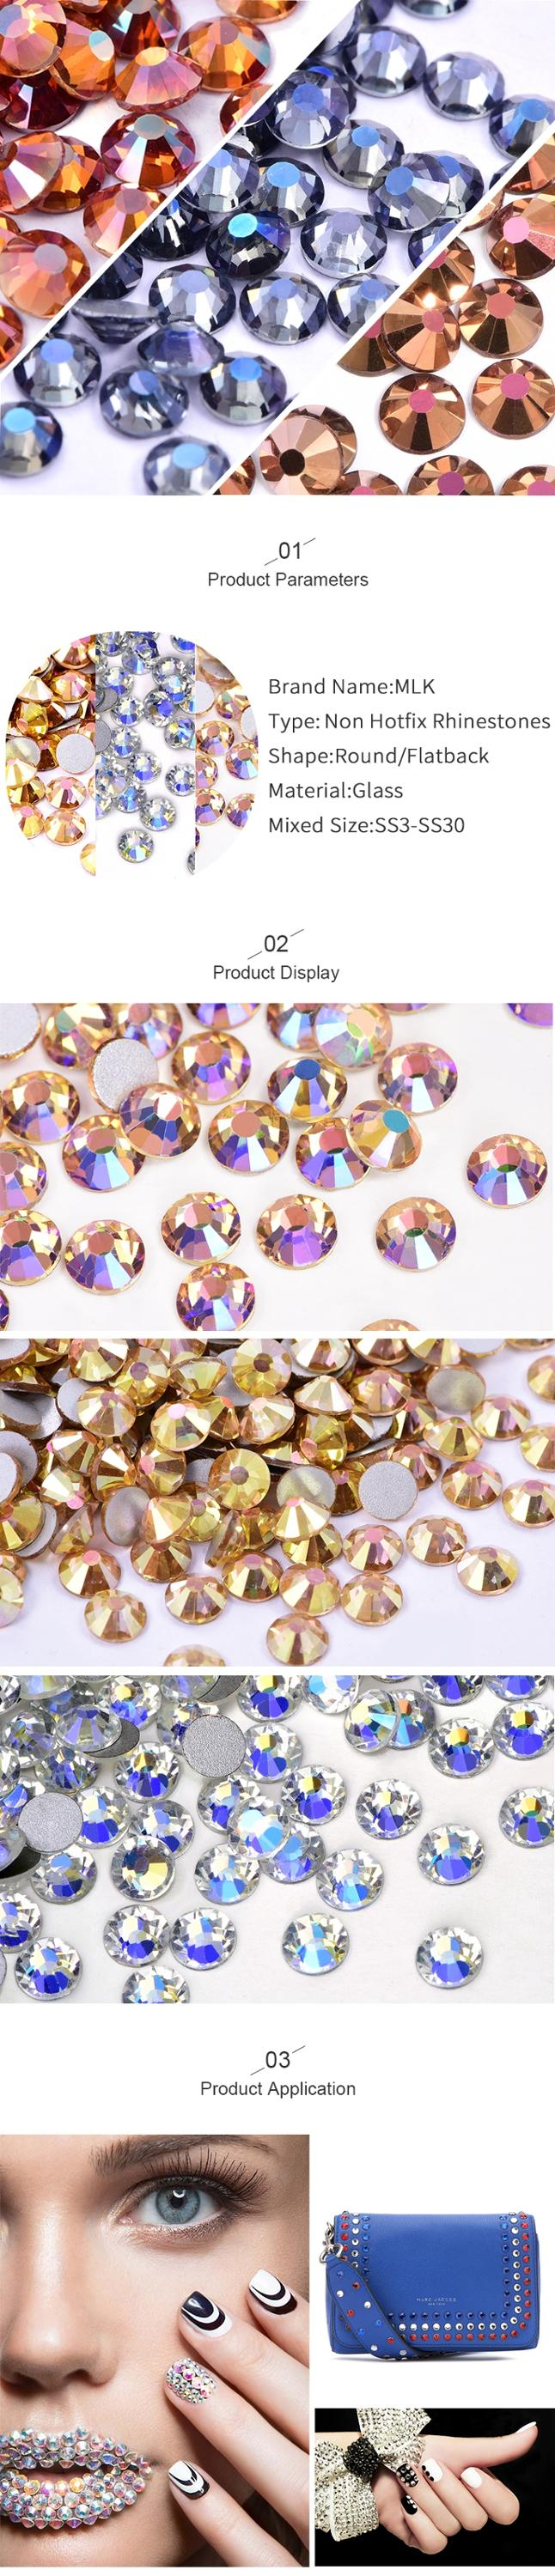 Oleeya New Arrival Ceramic White Crystal Glass Glitter Flatback Rhinestones Flatback Diamond Nail Art Decorations